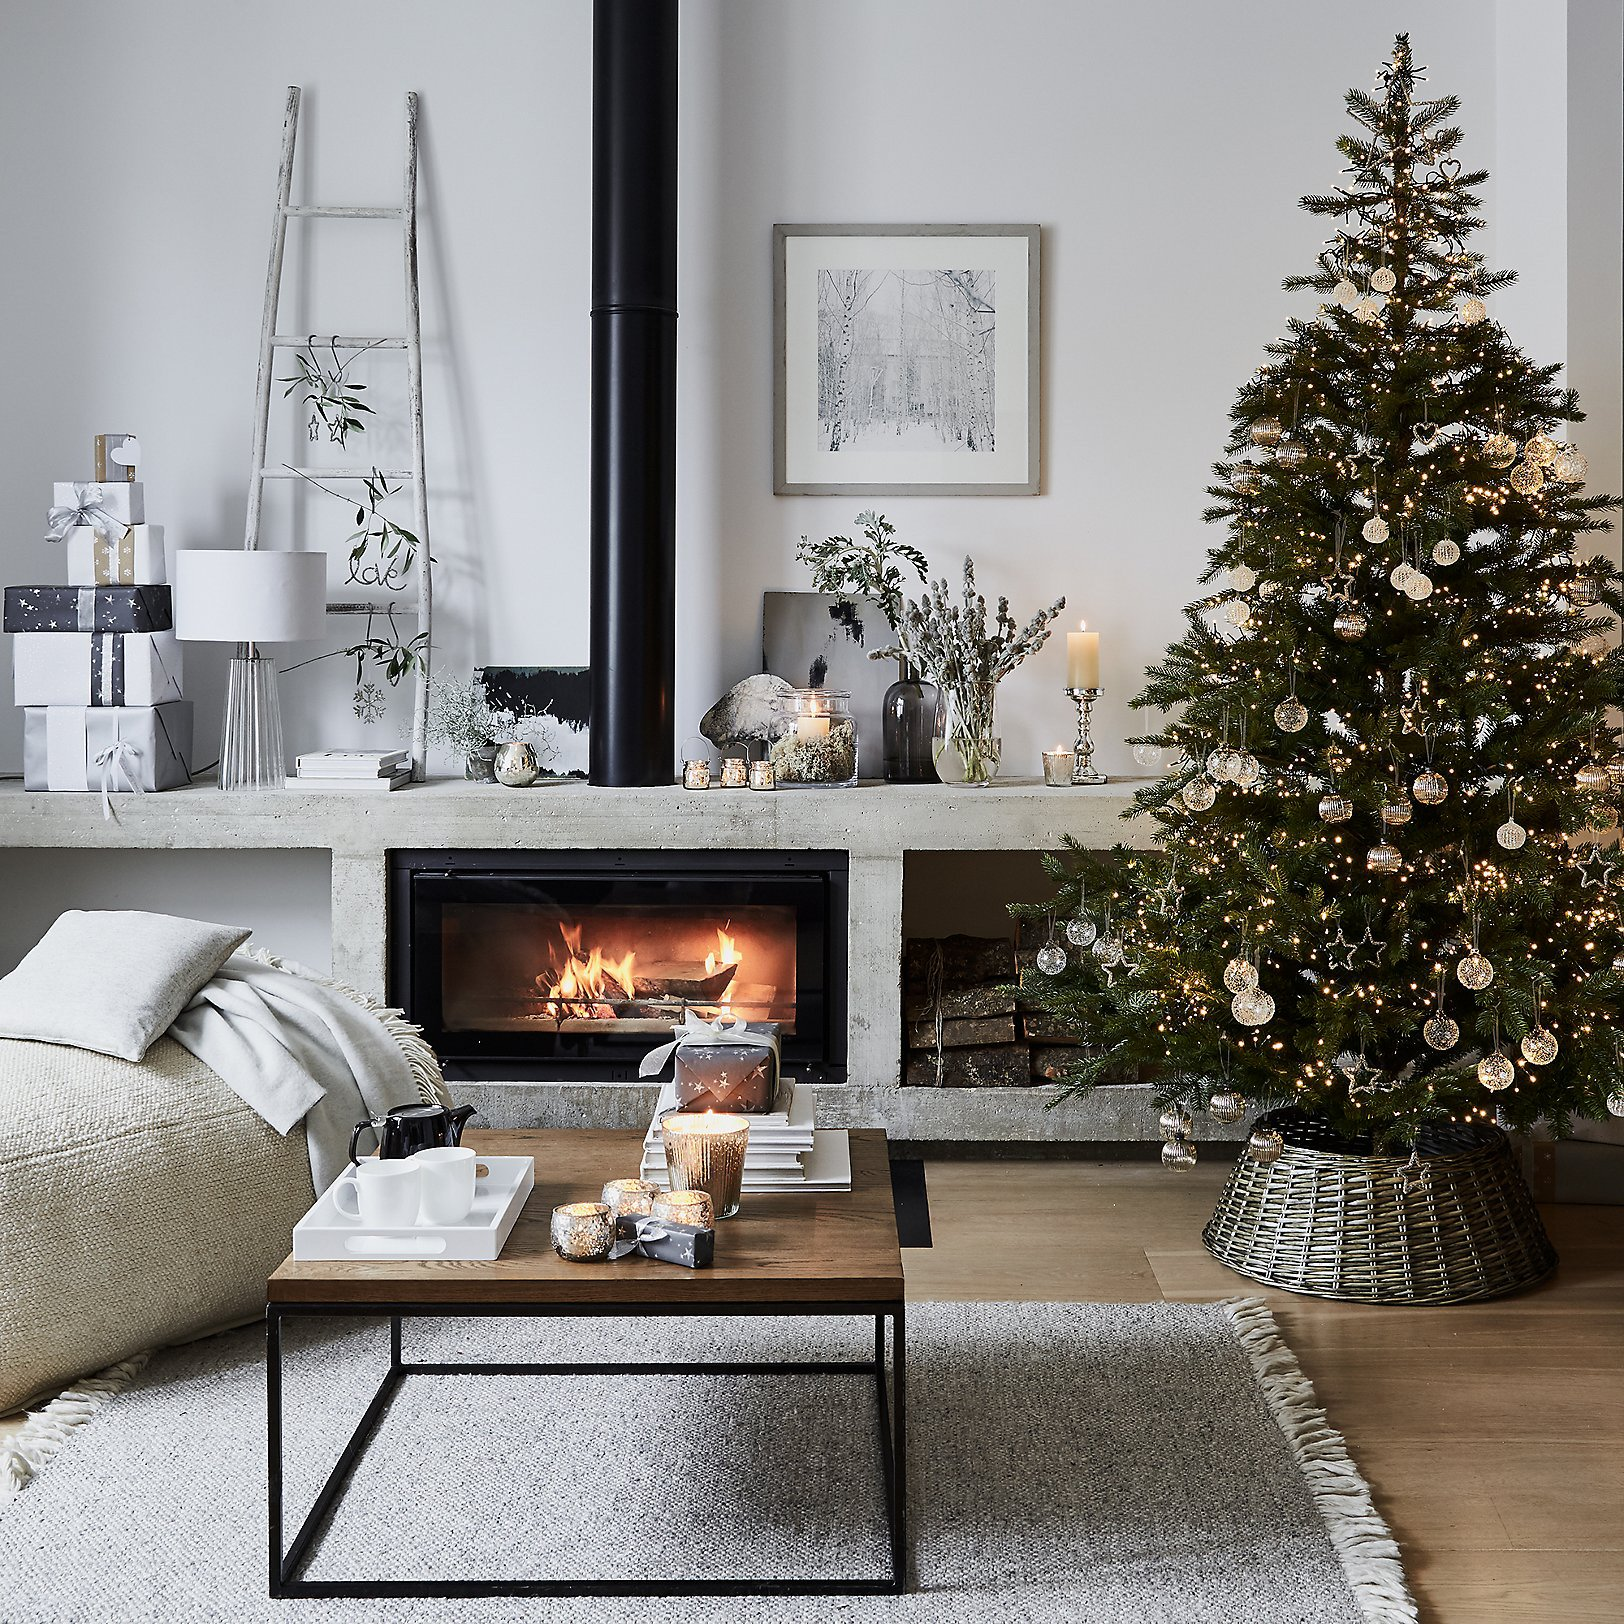 Interior designer top tips to decorate your home for Christmas